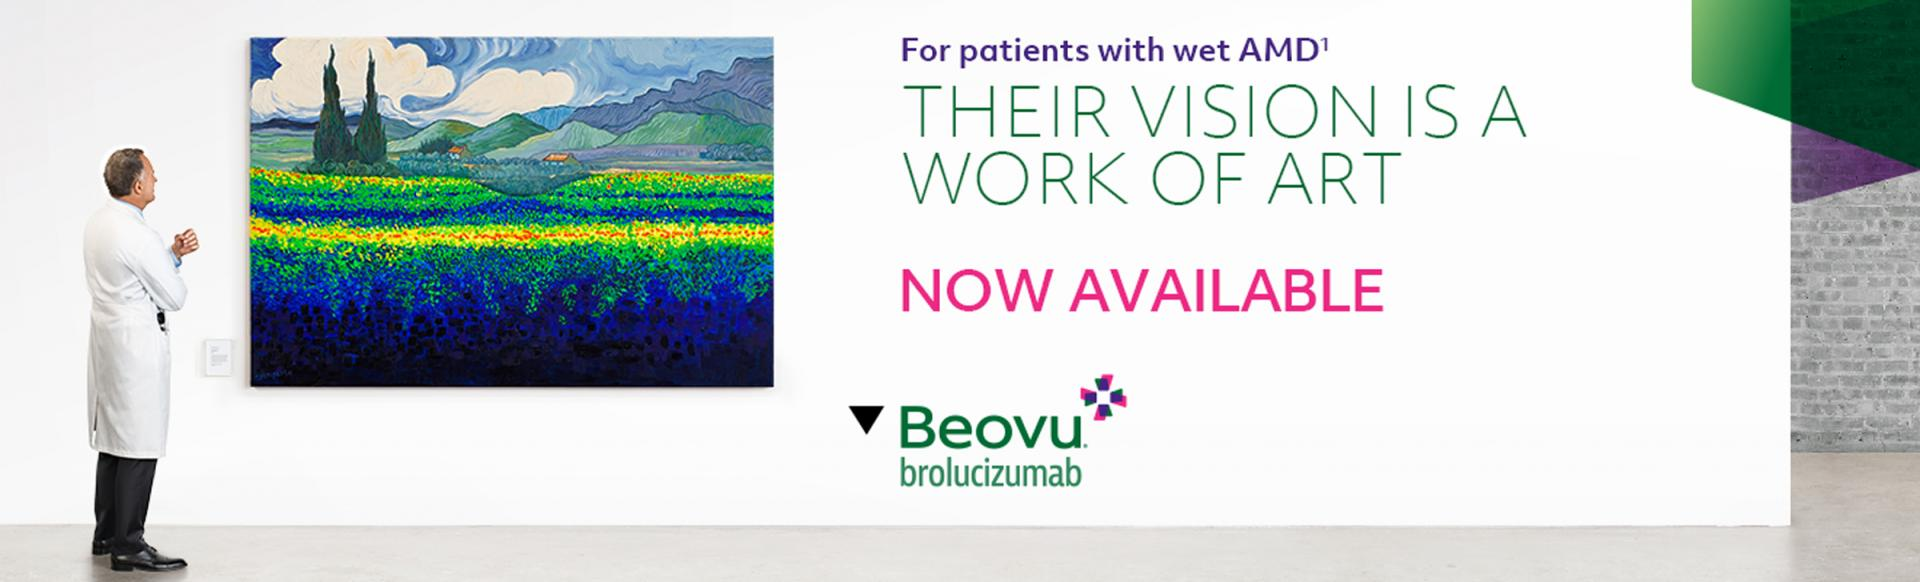 Top banner. Beovu now authorised in wet AMD